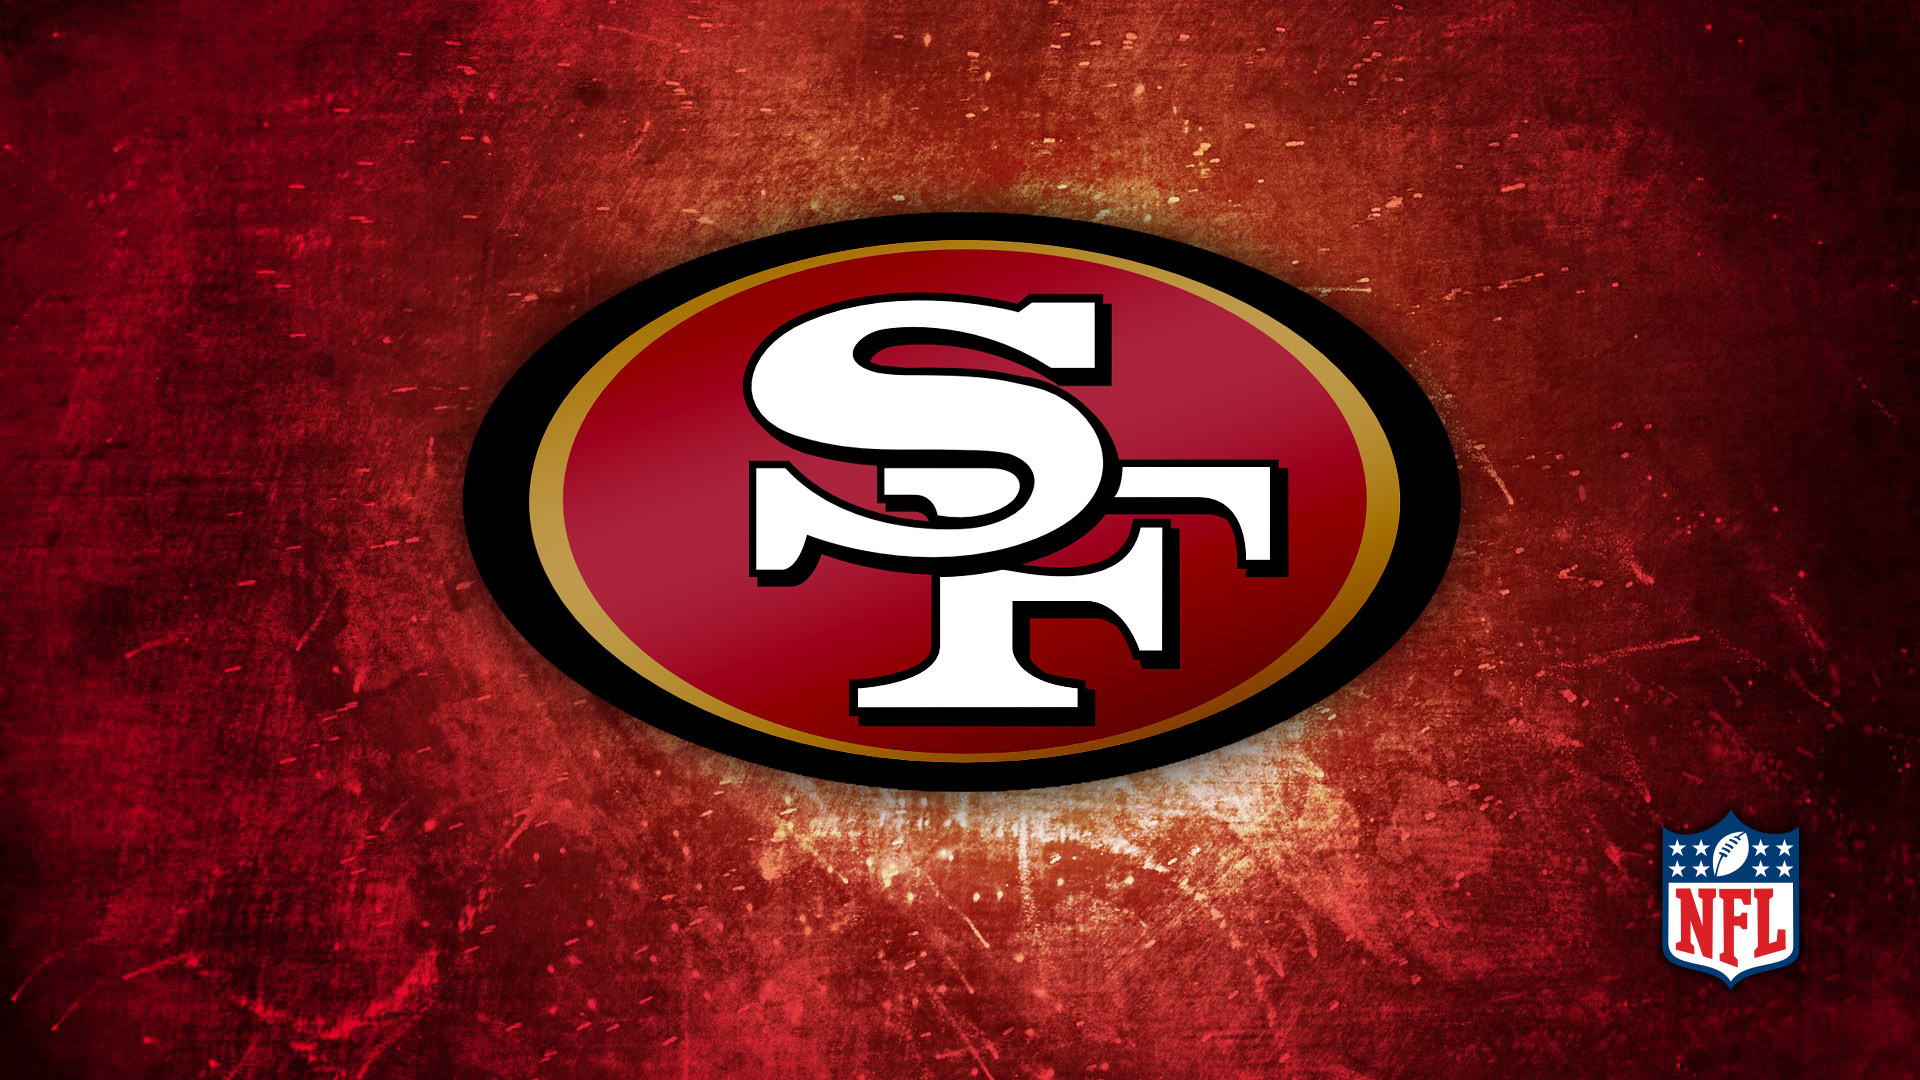 1920x1080 49ers Red & Gold Logo  HD Image Sports / NFL Football